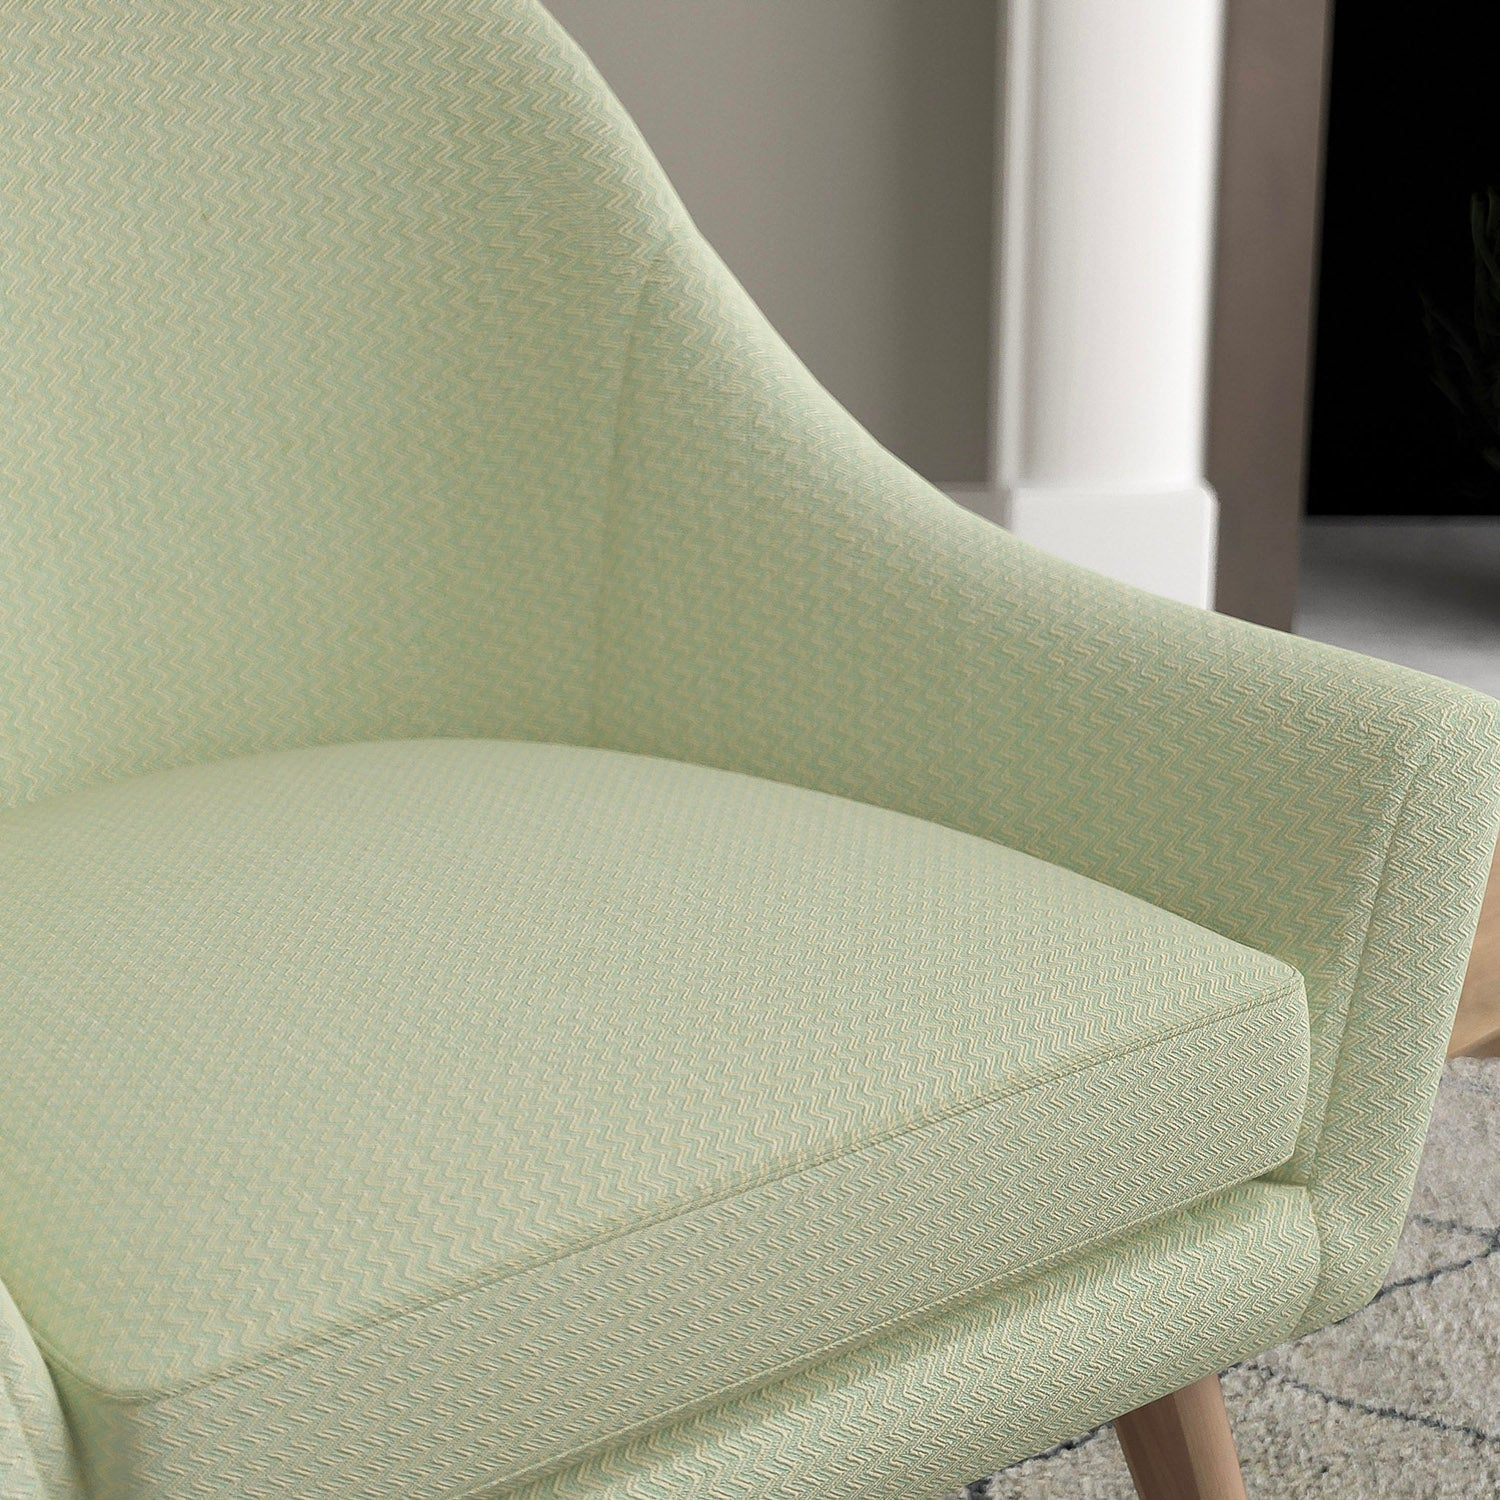 Chair in a mint green upholstery fabric with a chevron weave design